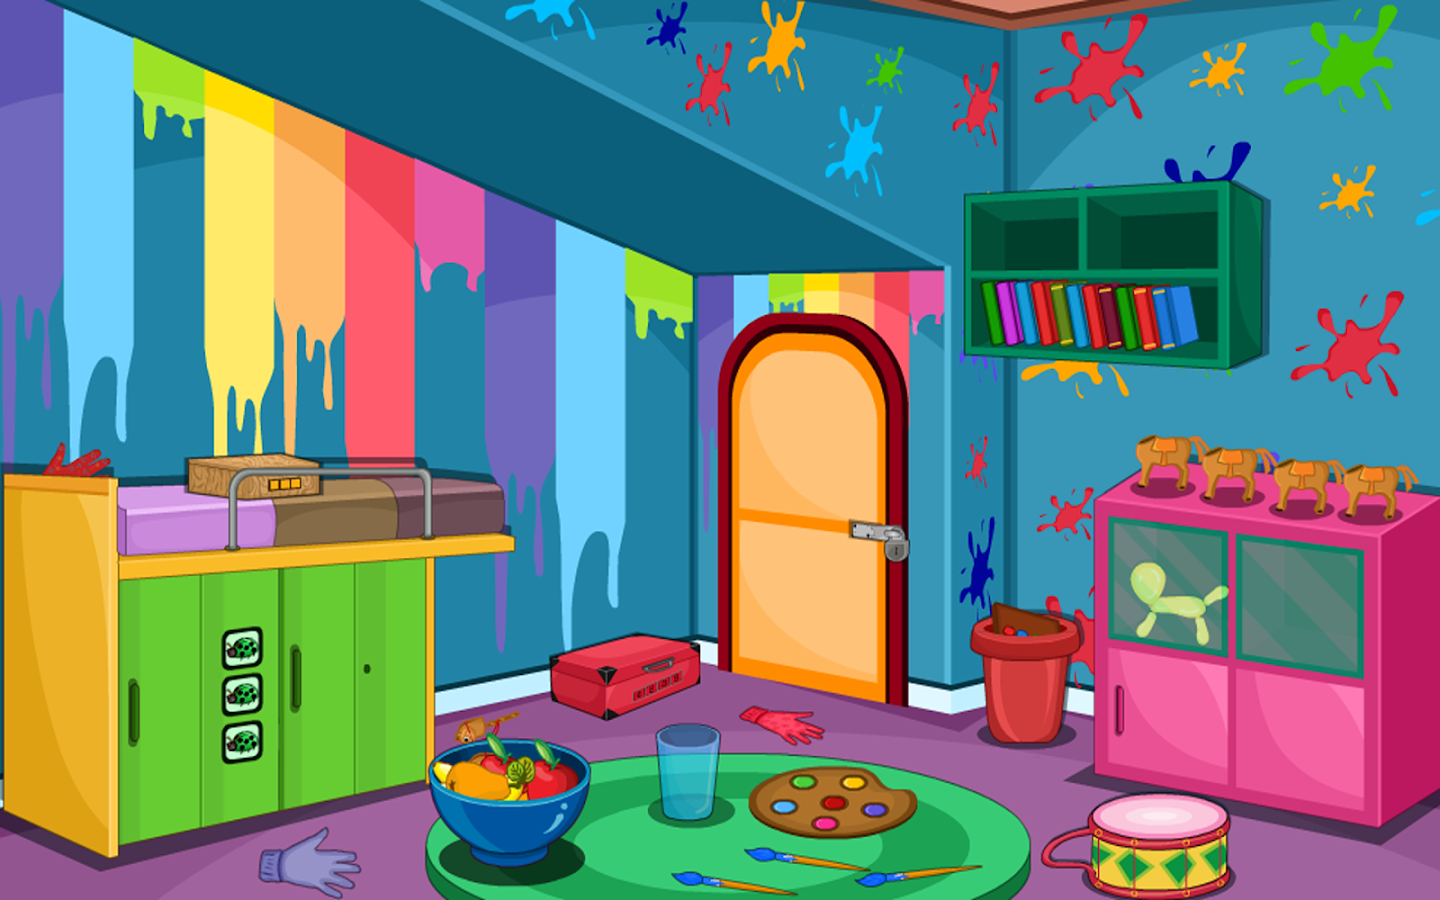 Escape puzzle kids room v1 android apps on google play for Escape puzzle